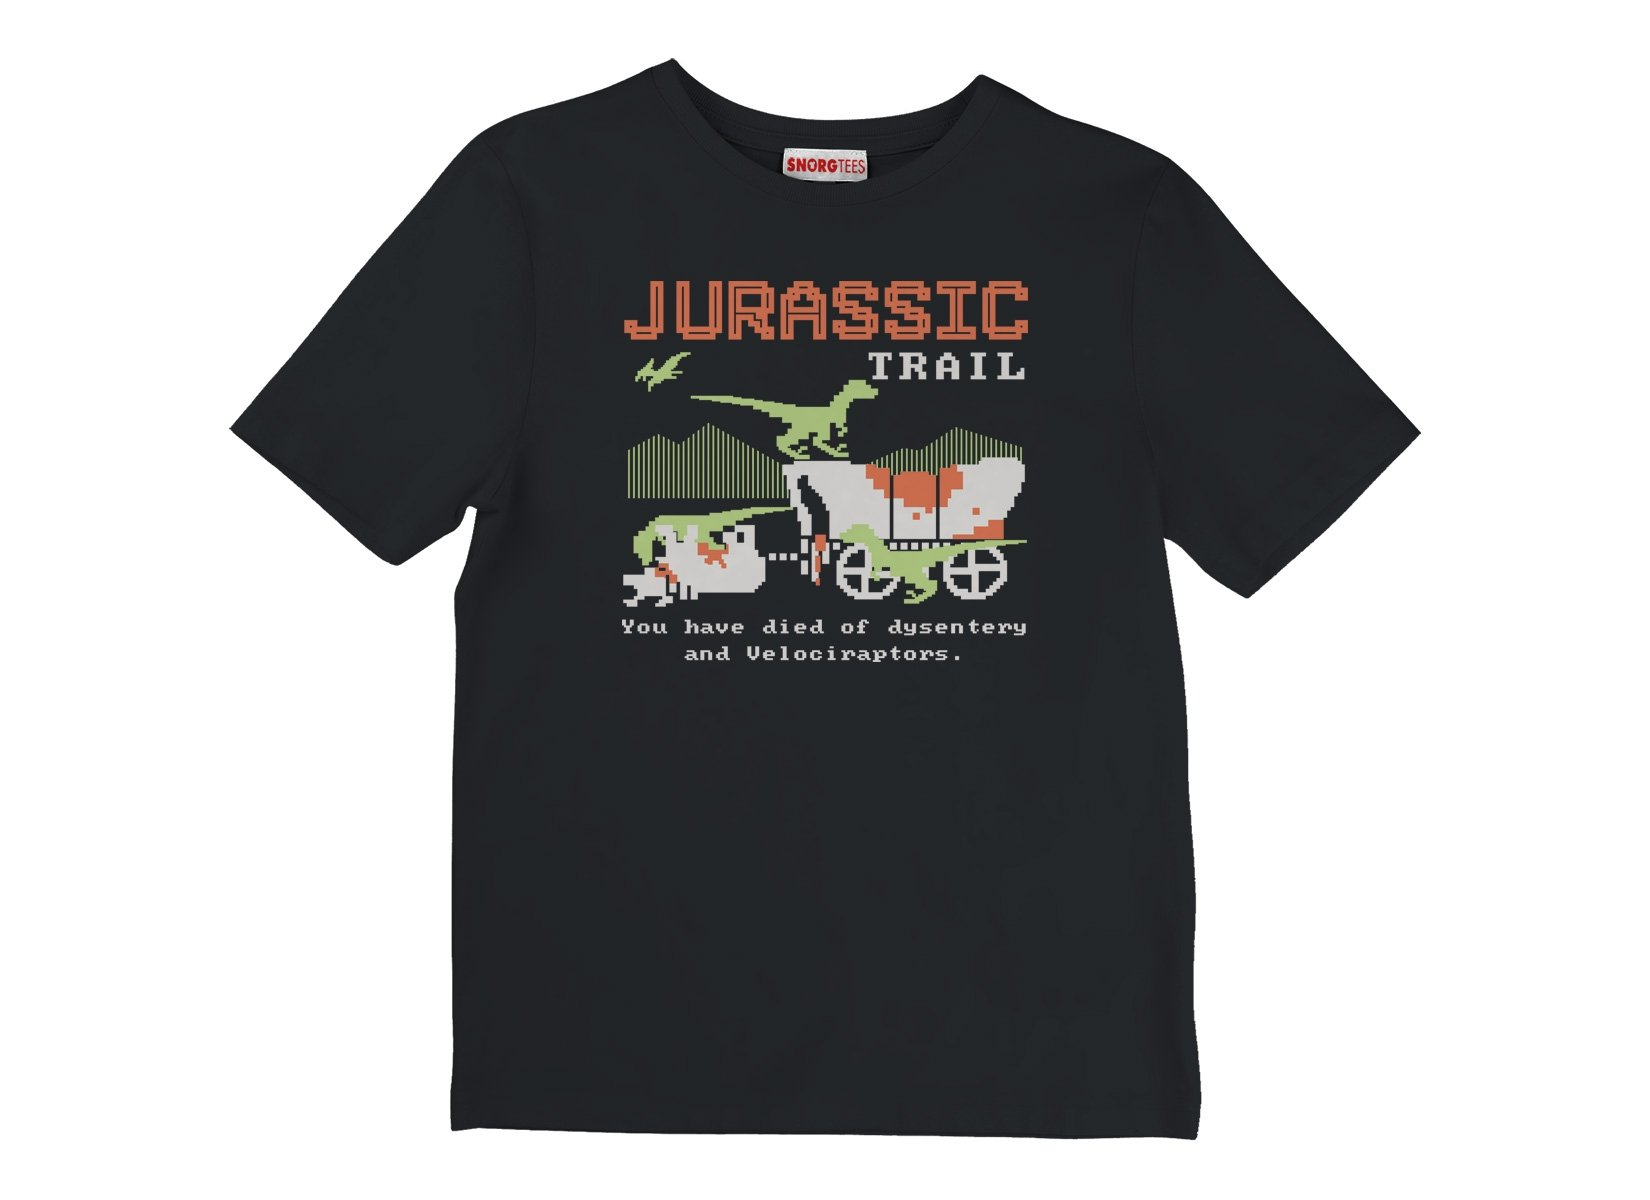 Jurassic Trail on Kids T-Shirt